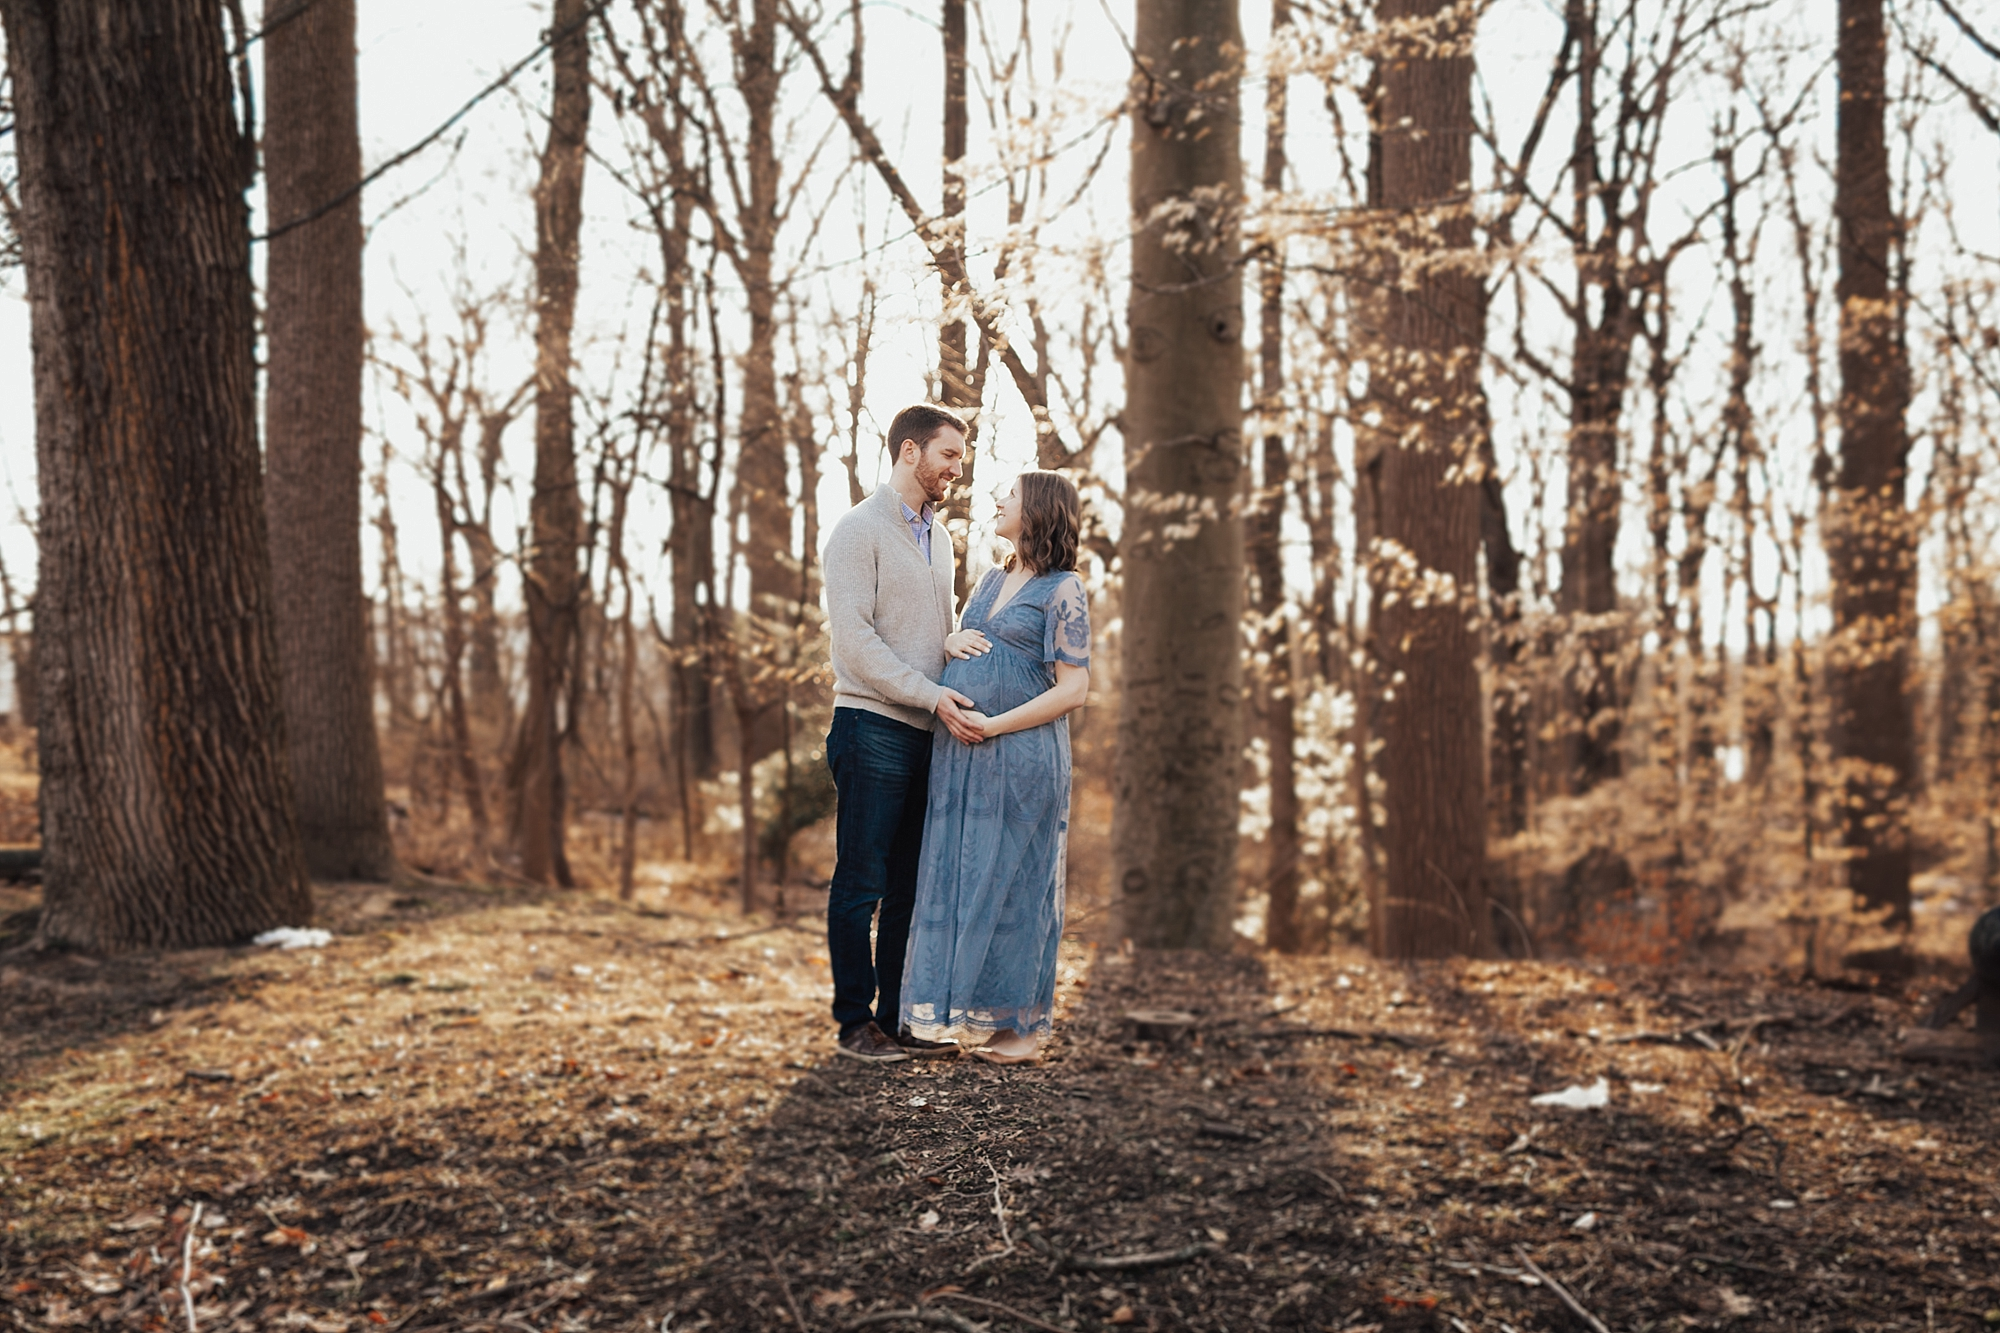 Joe_Mac_Creative_Maternity_Wedding_Engagements_Photography_Philadelphia_Valley_Forge__0032.jpg